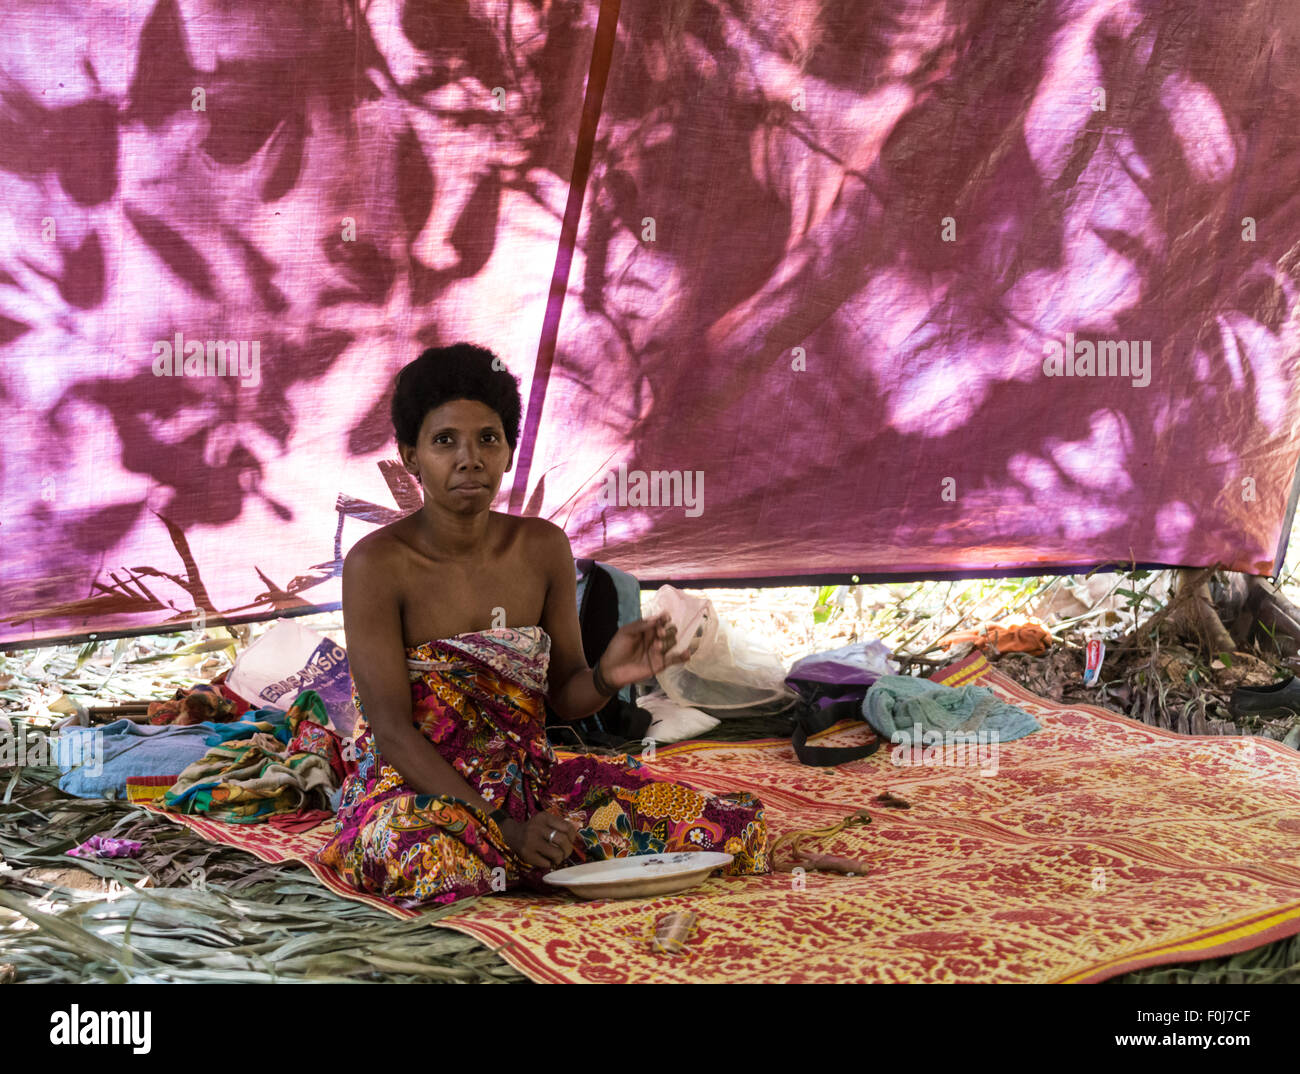 Orang Asil woman sitting in a tent in the jungle, natives, indigenous people, tropical rain forest, Taman Negara - Stock Image